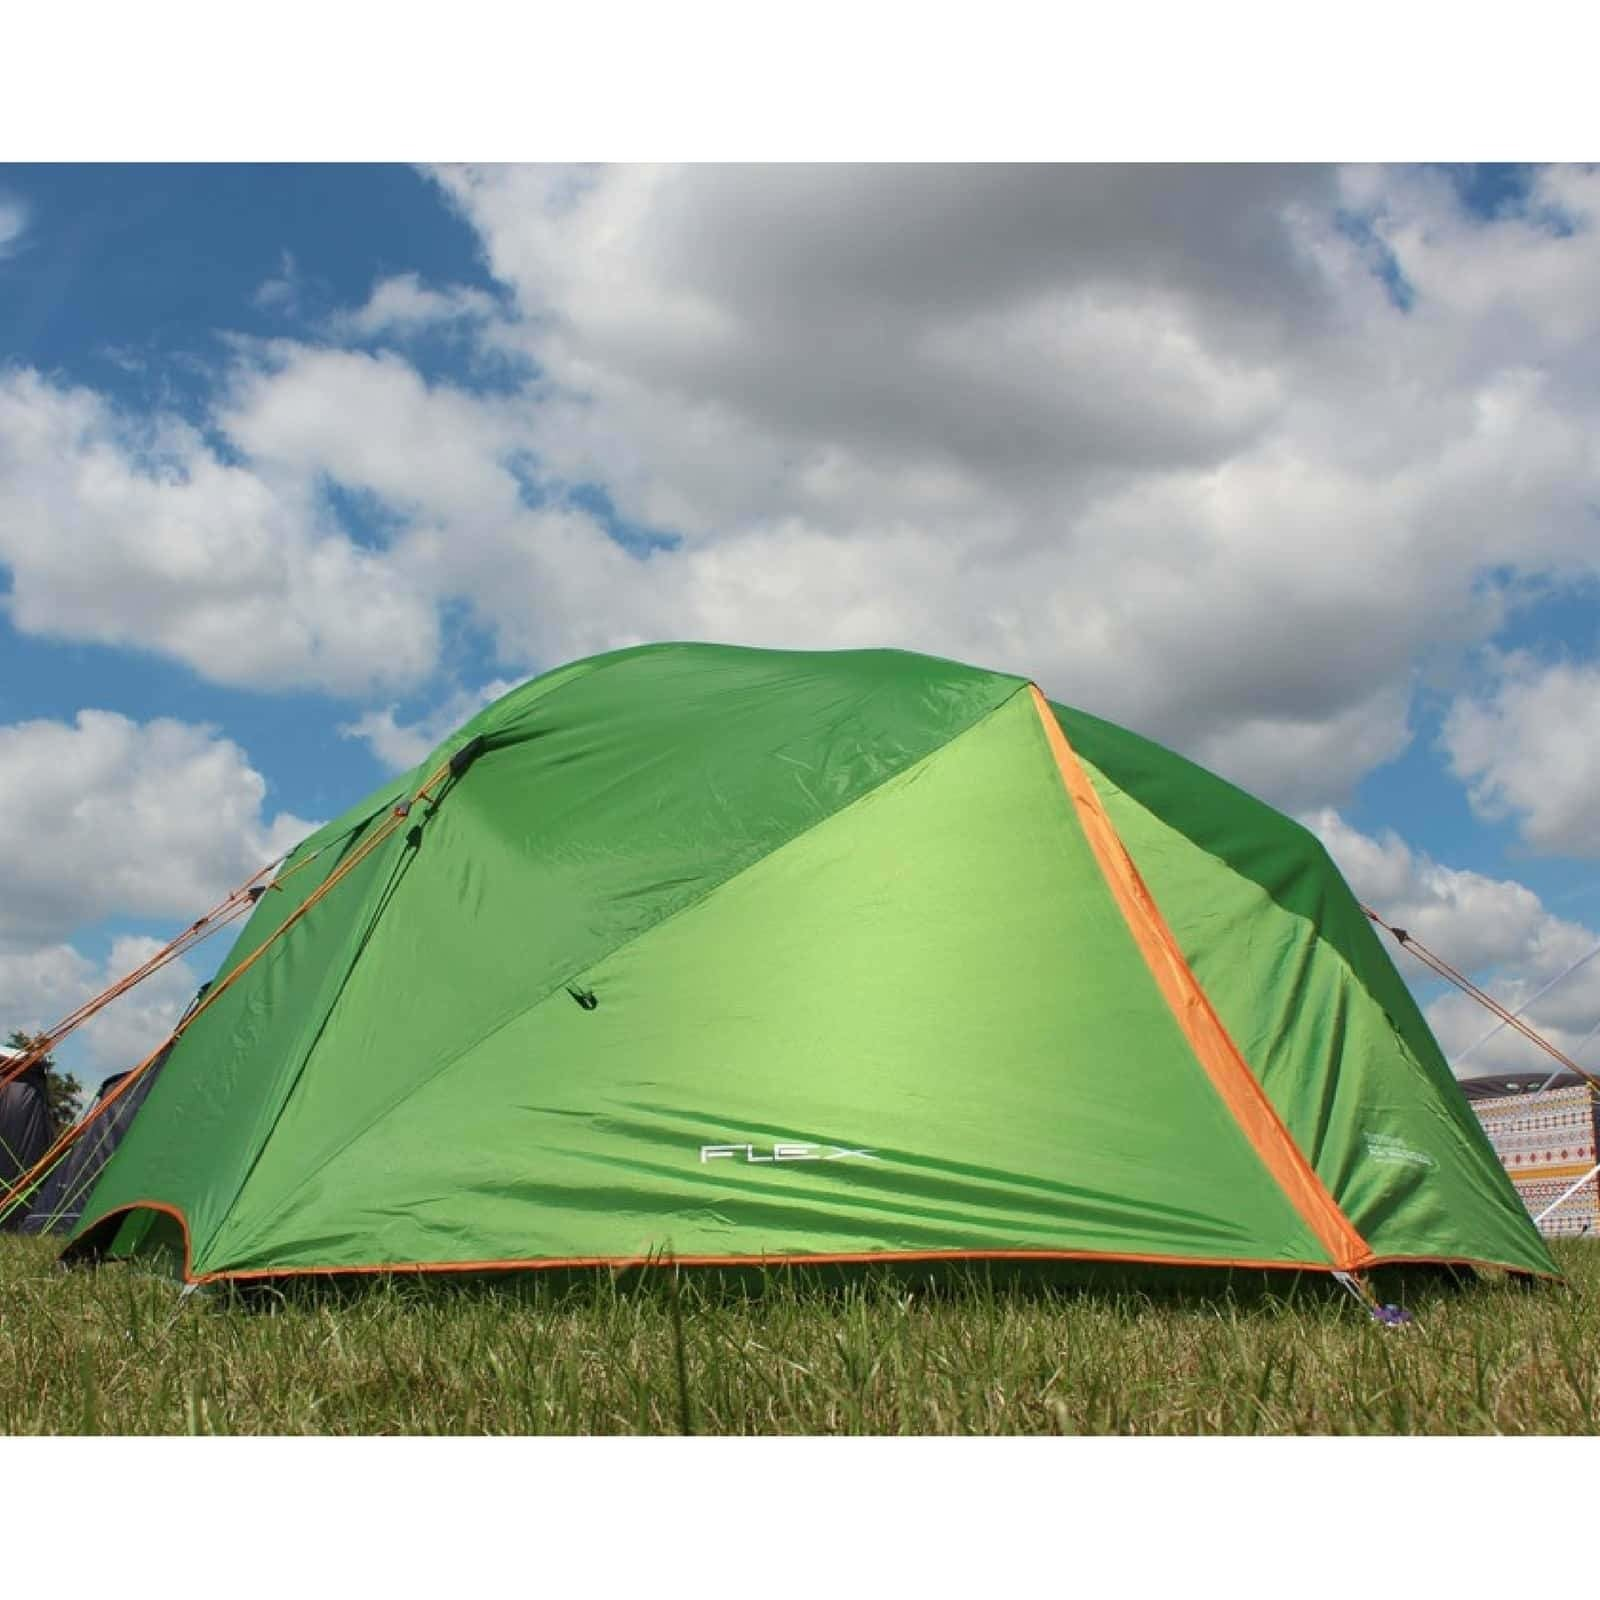 Outdoor Revolution Flex 2 Inflatable Air Tent Or18900 2018